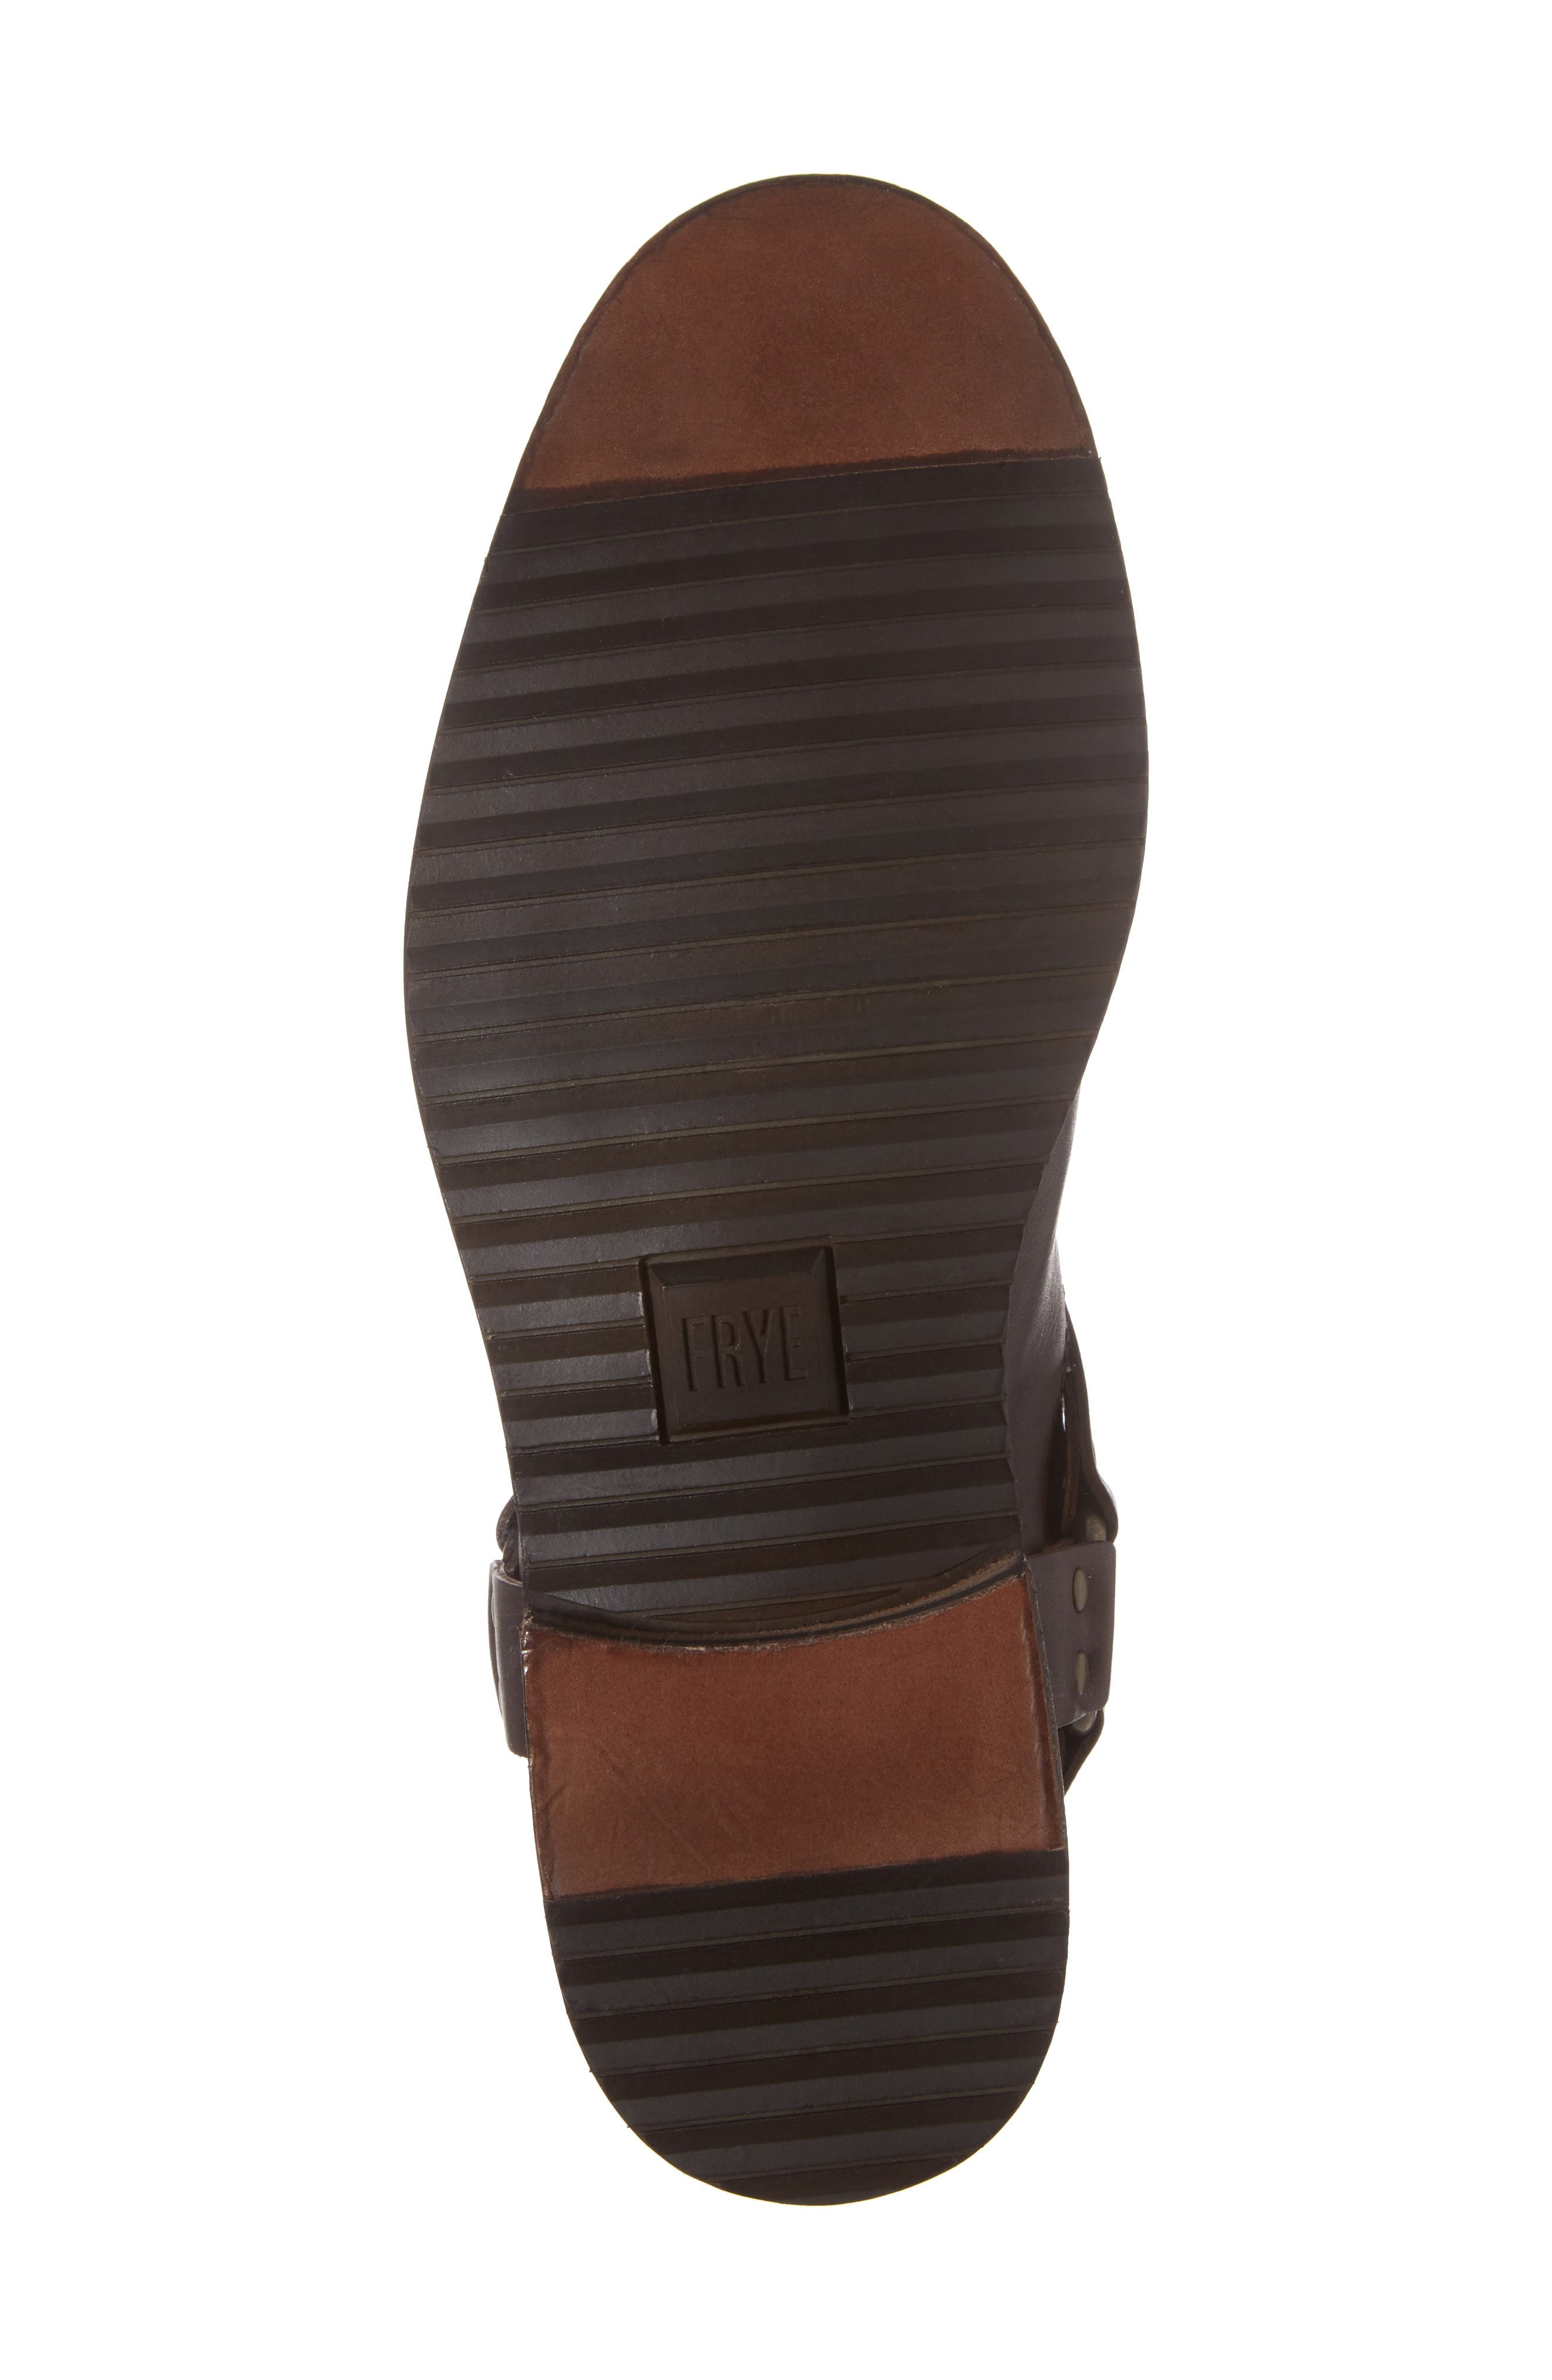 Sam Harness Boot,                             Alternate thumbnail 6, color,                             DARK BROWN LEATHER